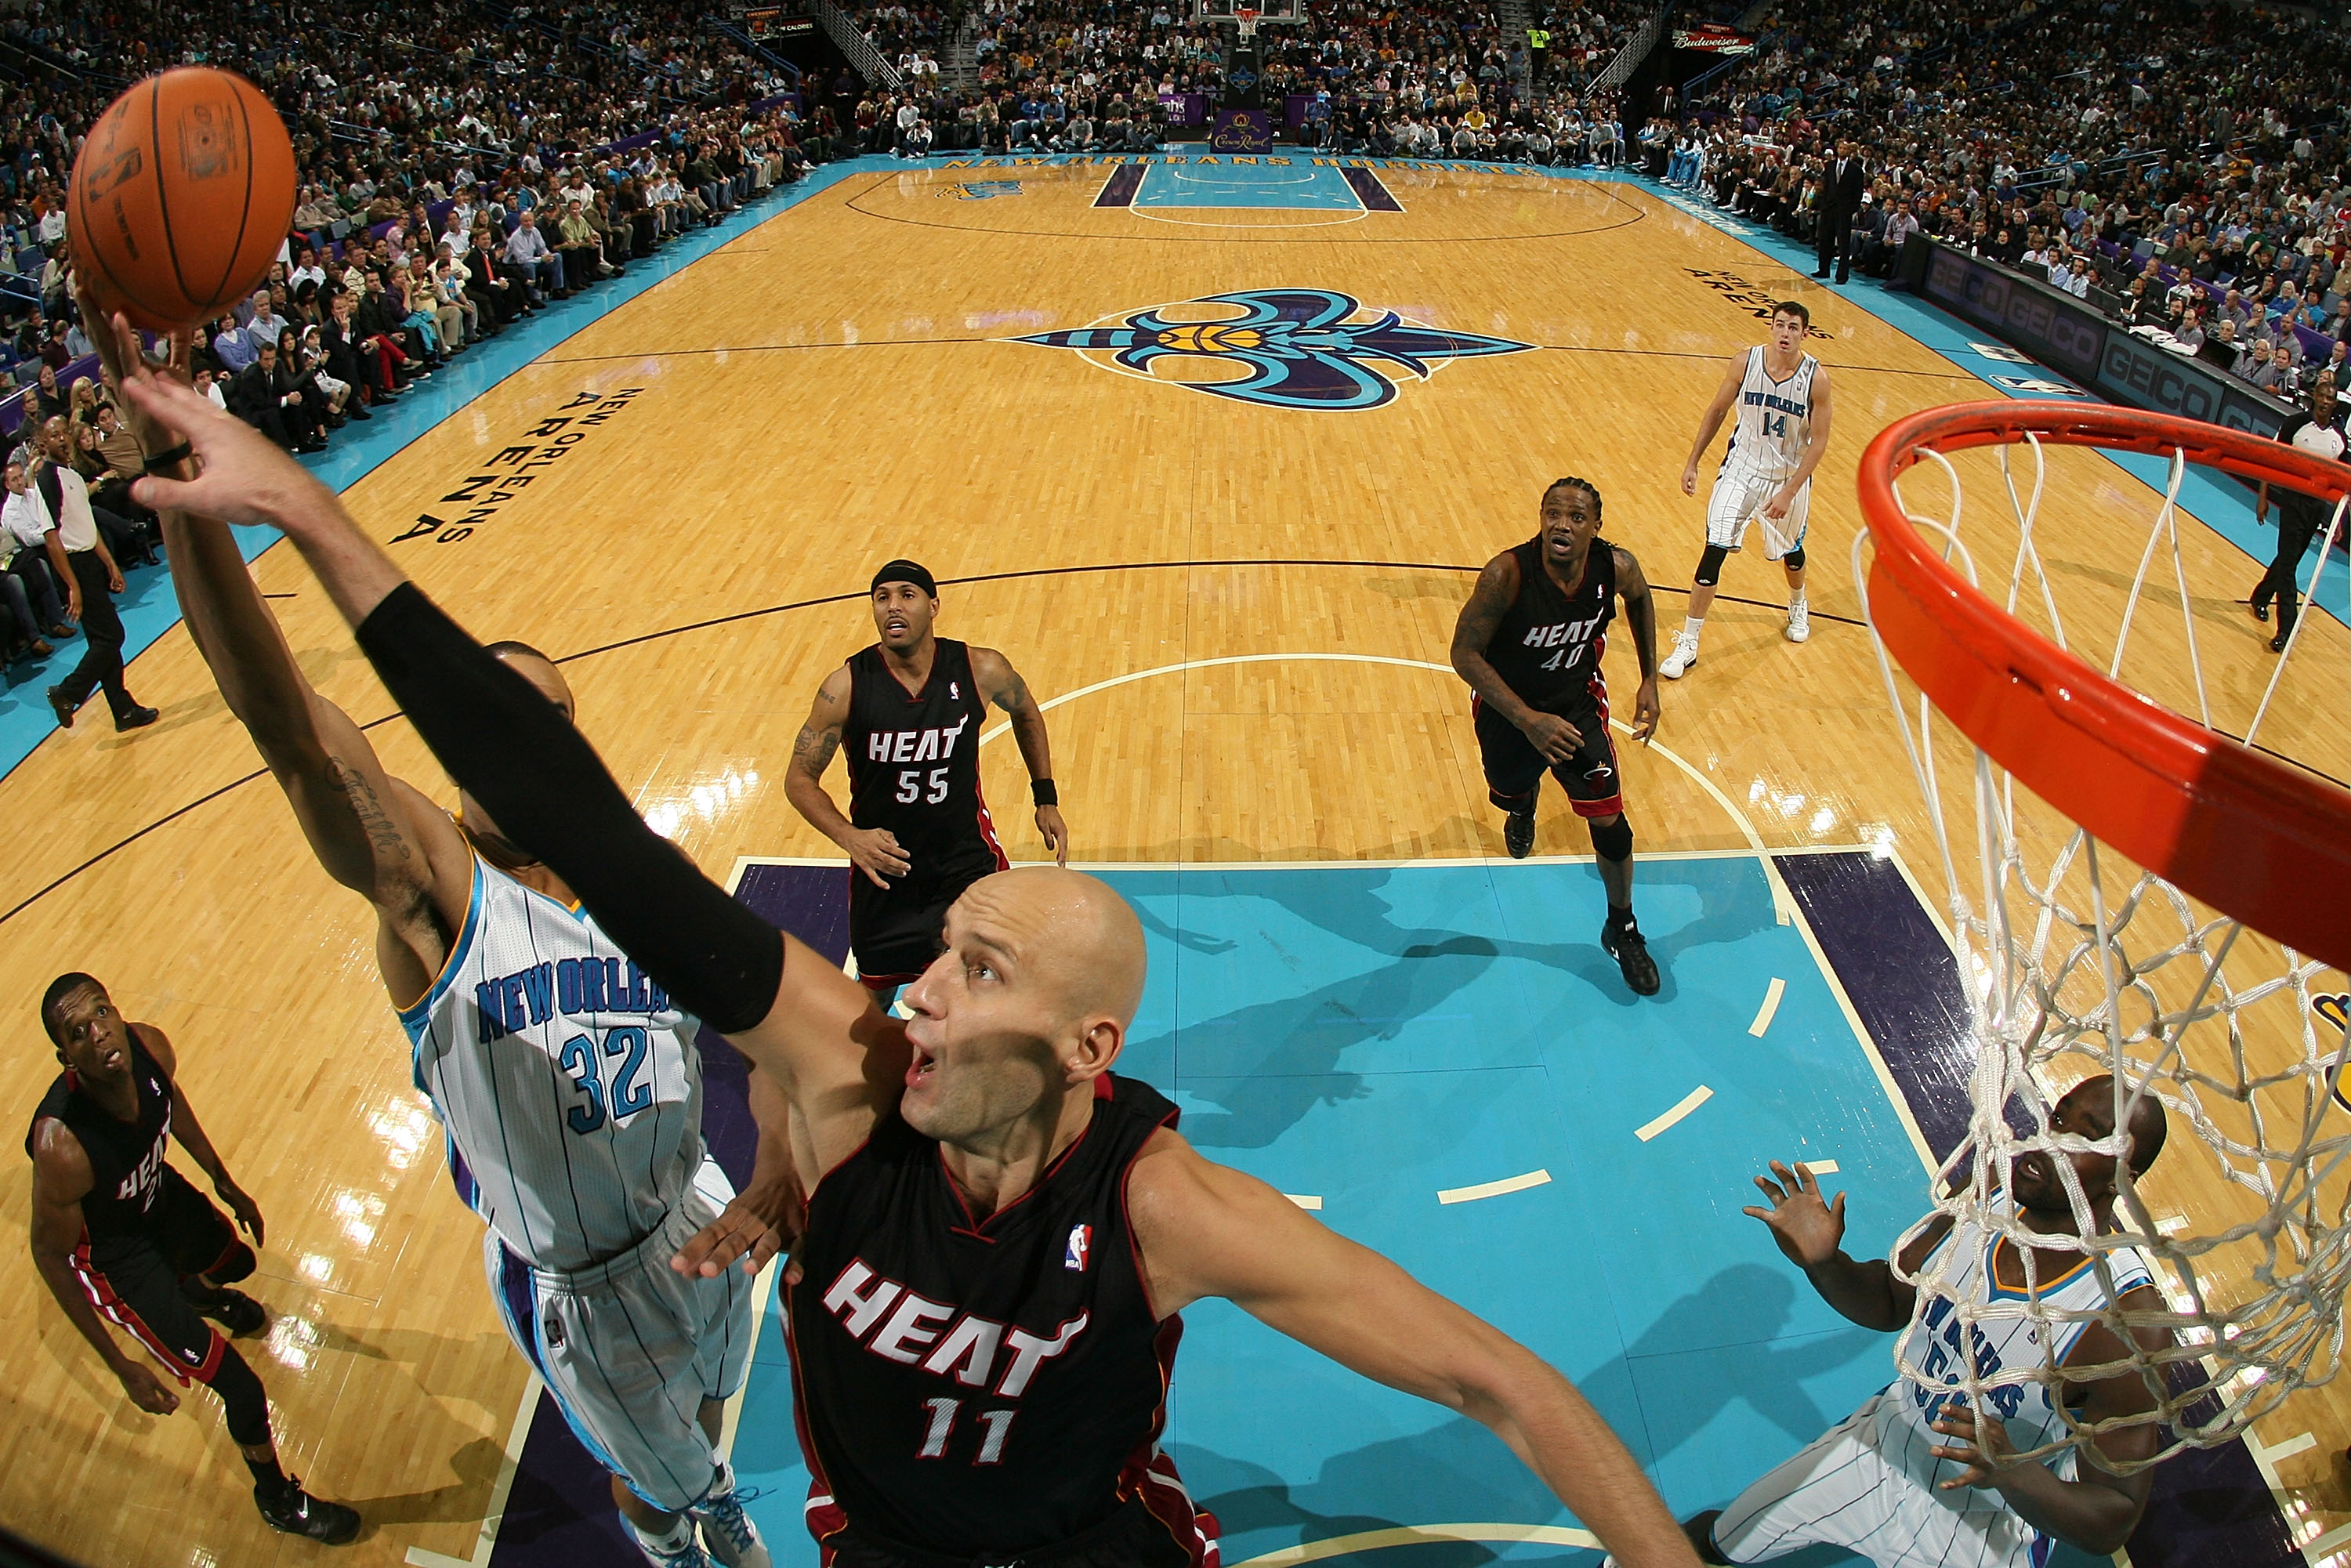 NEW ORLEANS - NOVEMBER 05:  Zydrunas Ilgauskas #11 of the Miami Heat shoots the ball during the game against the New Orleans Hornets at the New Orleans Arena on November 5, 2010 in New Orleans, Louisiana.  The Hornets defeated the Heat 96-93.    NOTE TO U